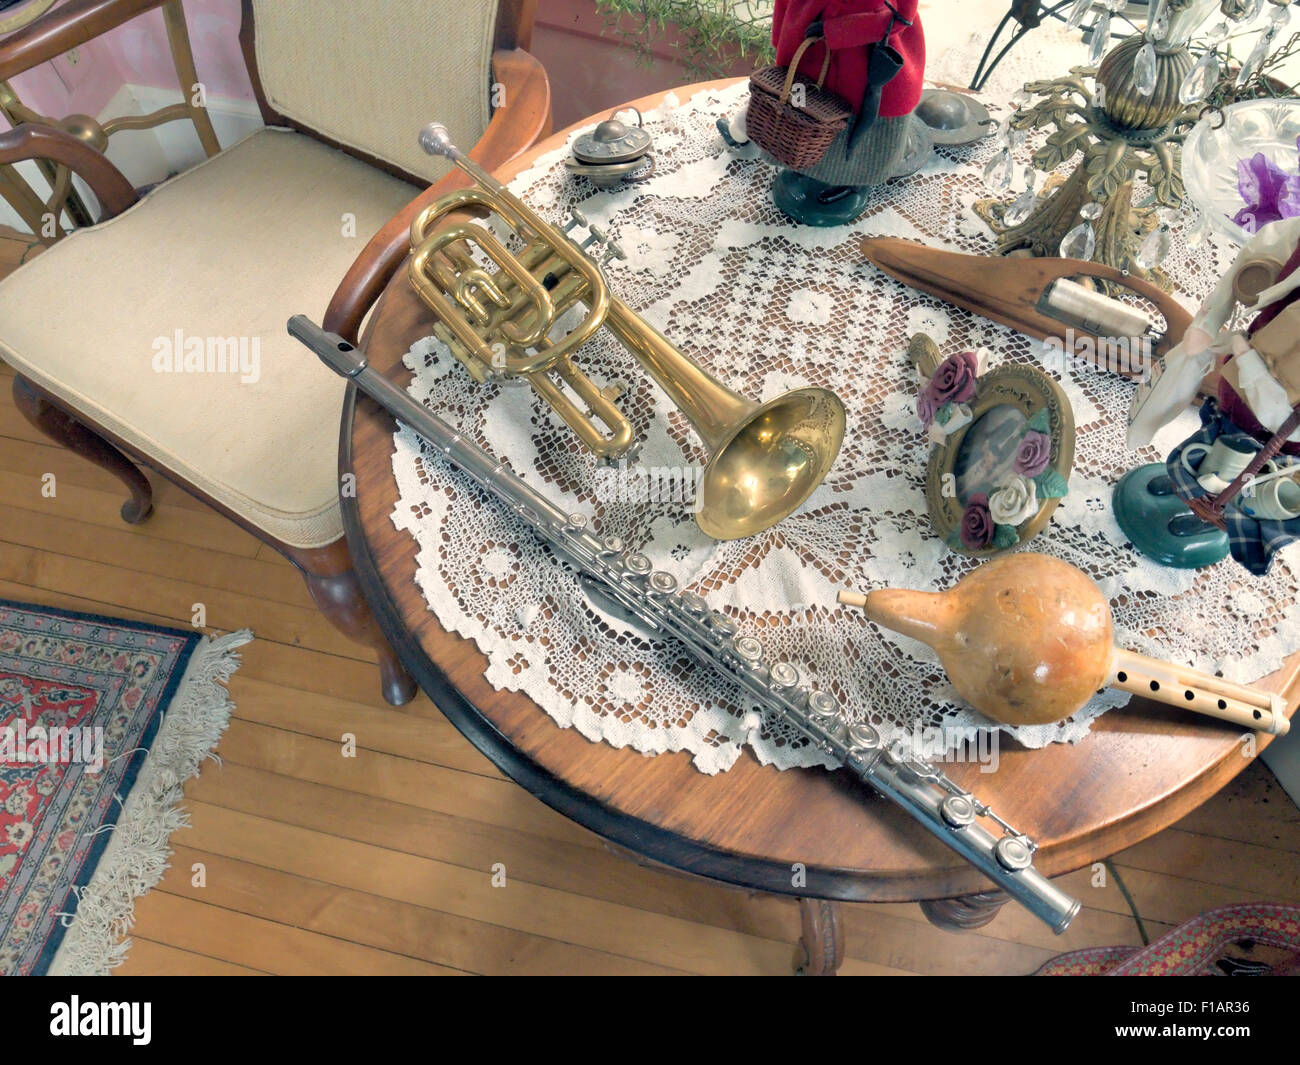 A table with bric-a-brac - Stock Image